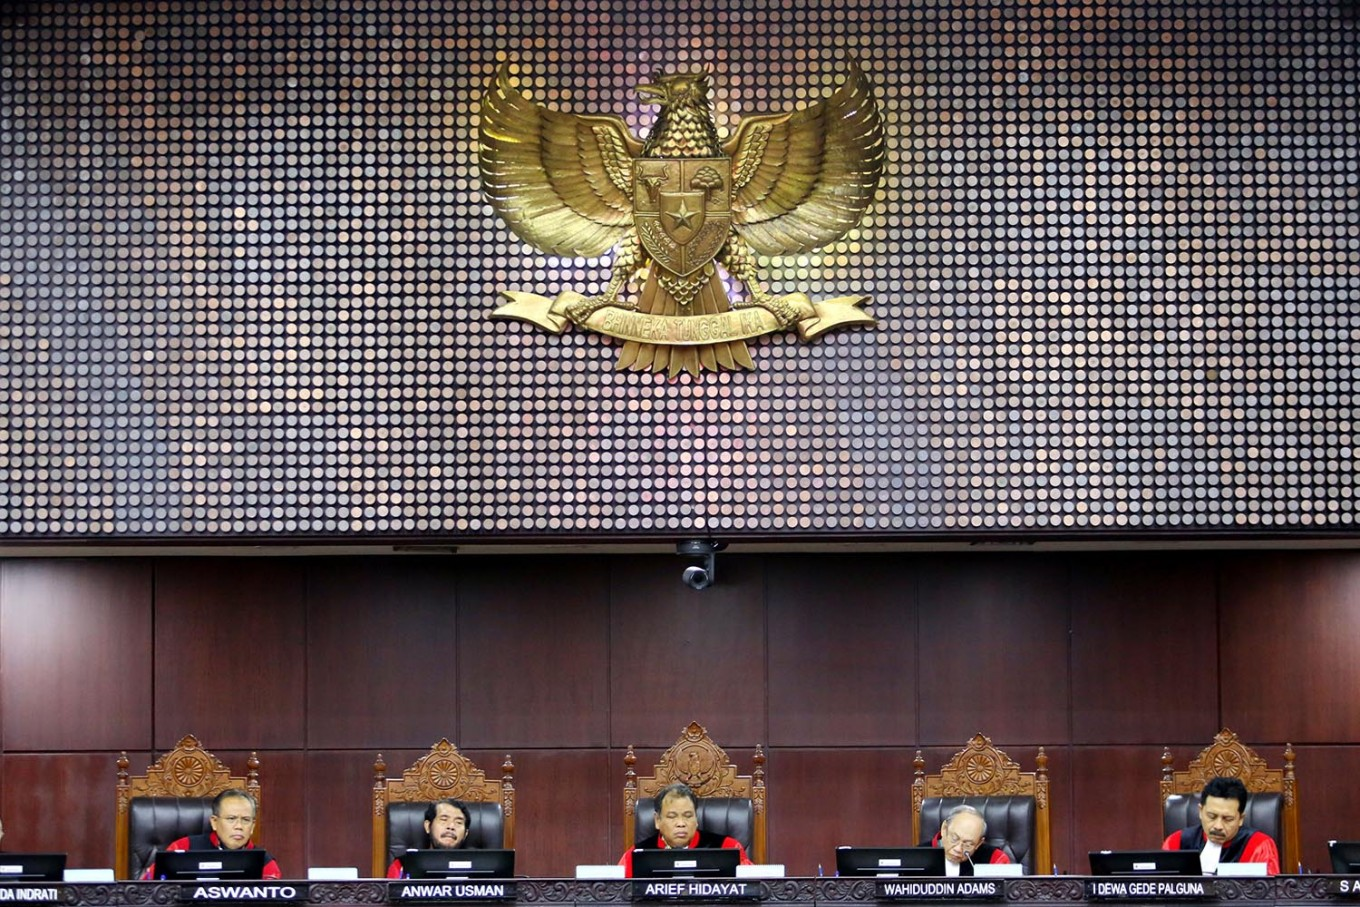 Constitutional Court's dignity in jeopardy